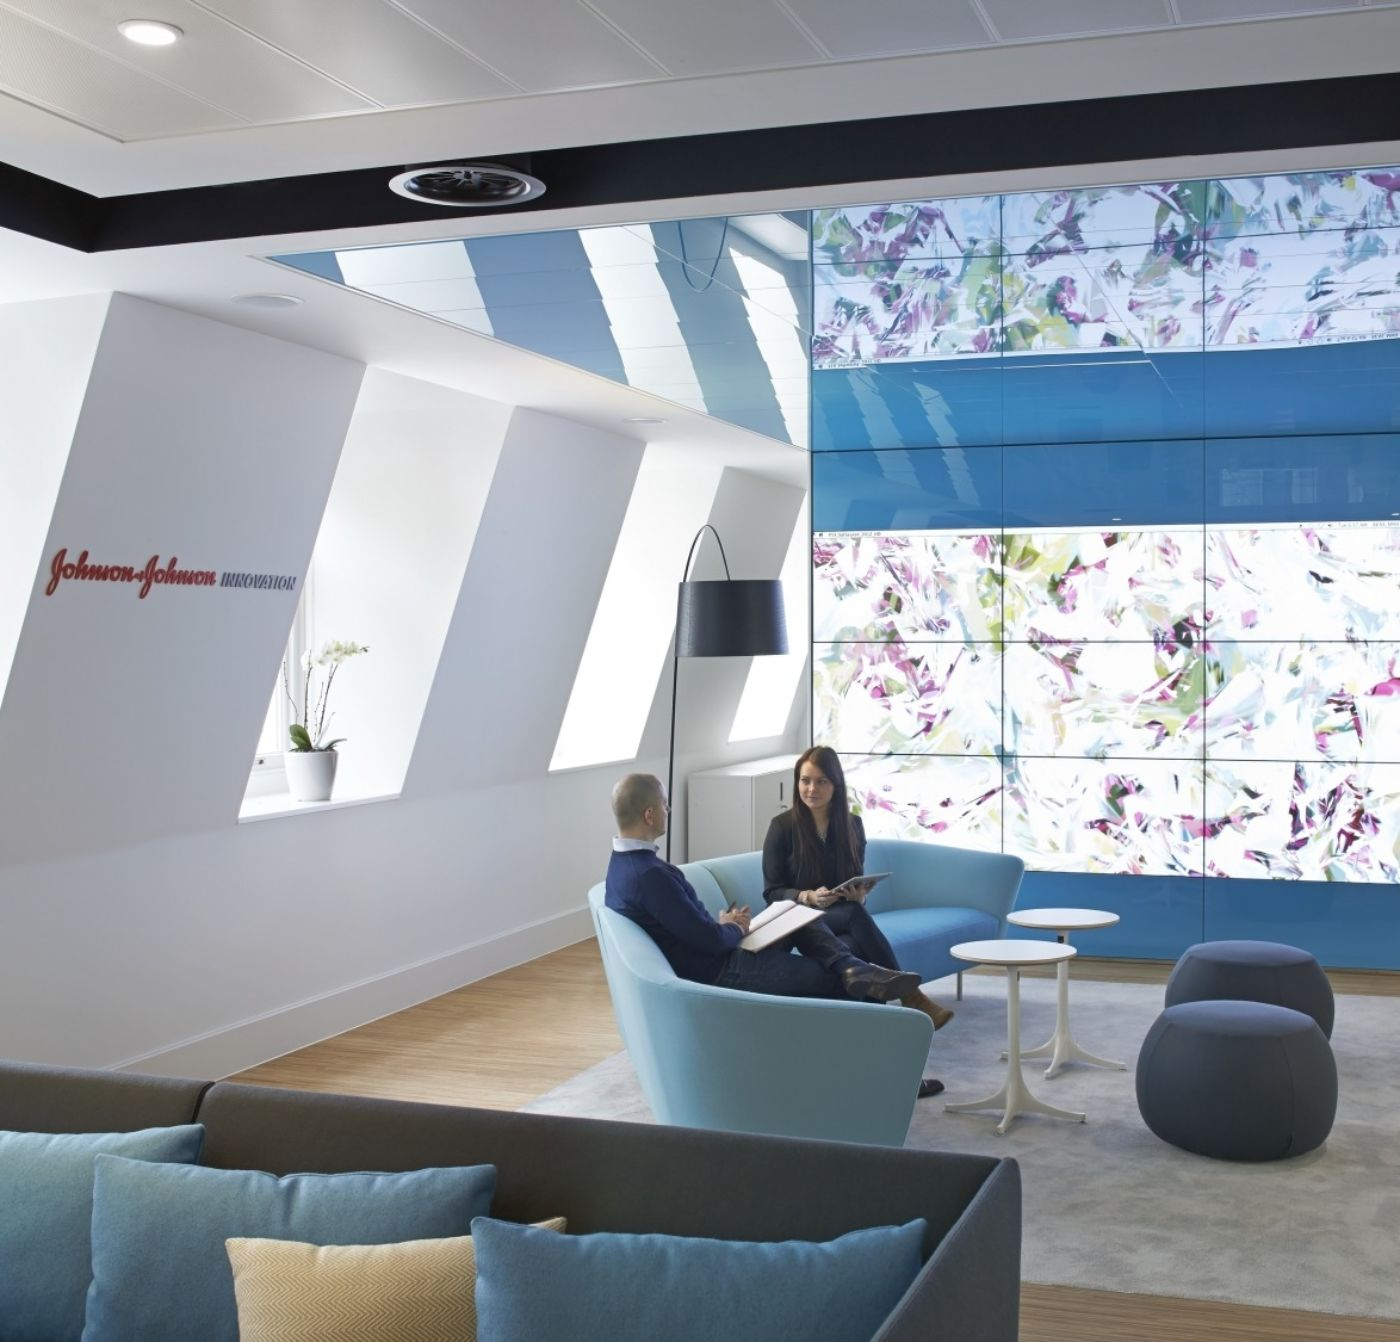 People sitting in reception area